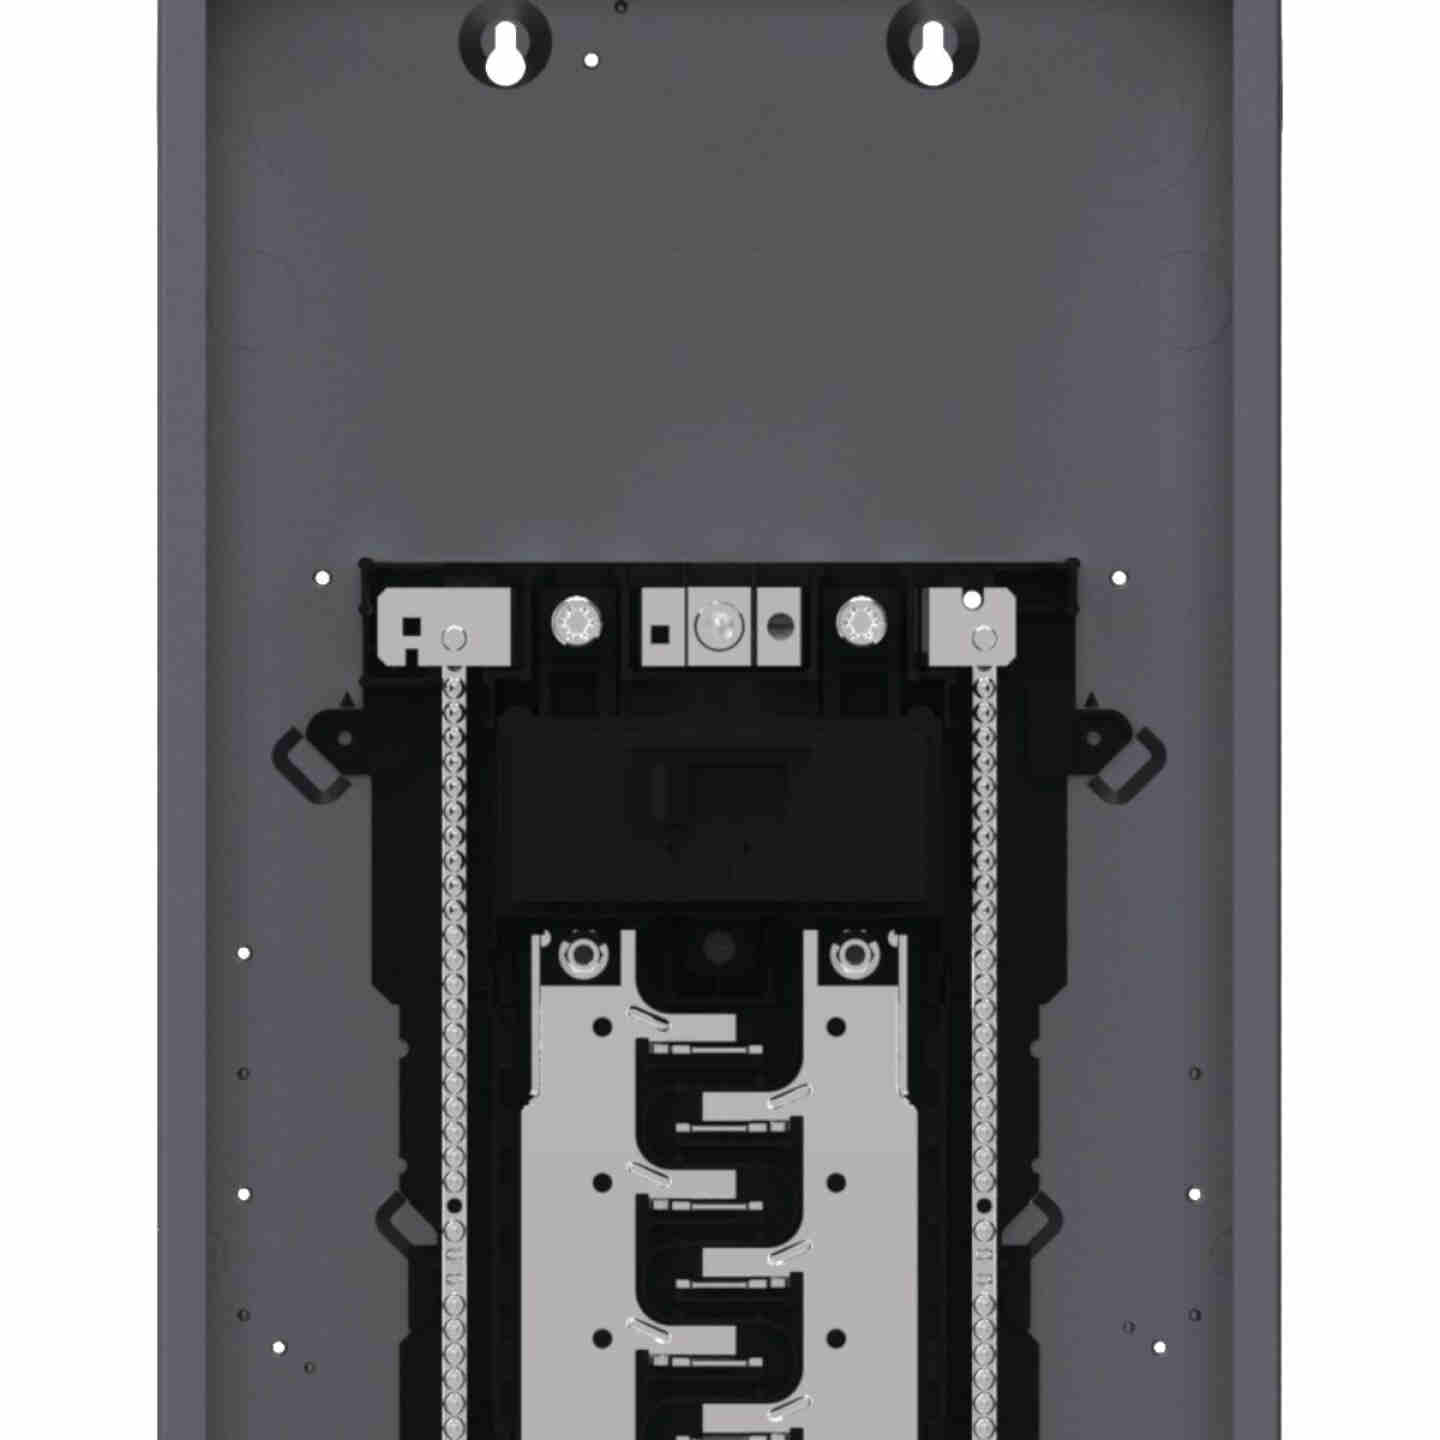 Square D Homeline 200A 40-Space 80-Pole Indoor Meter Breaker Panel Image 5